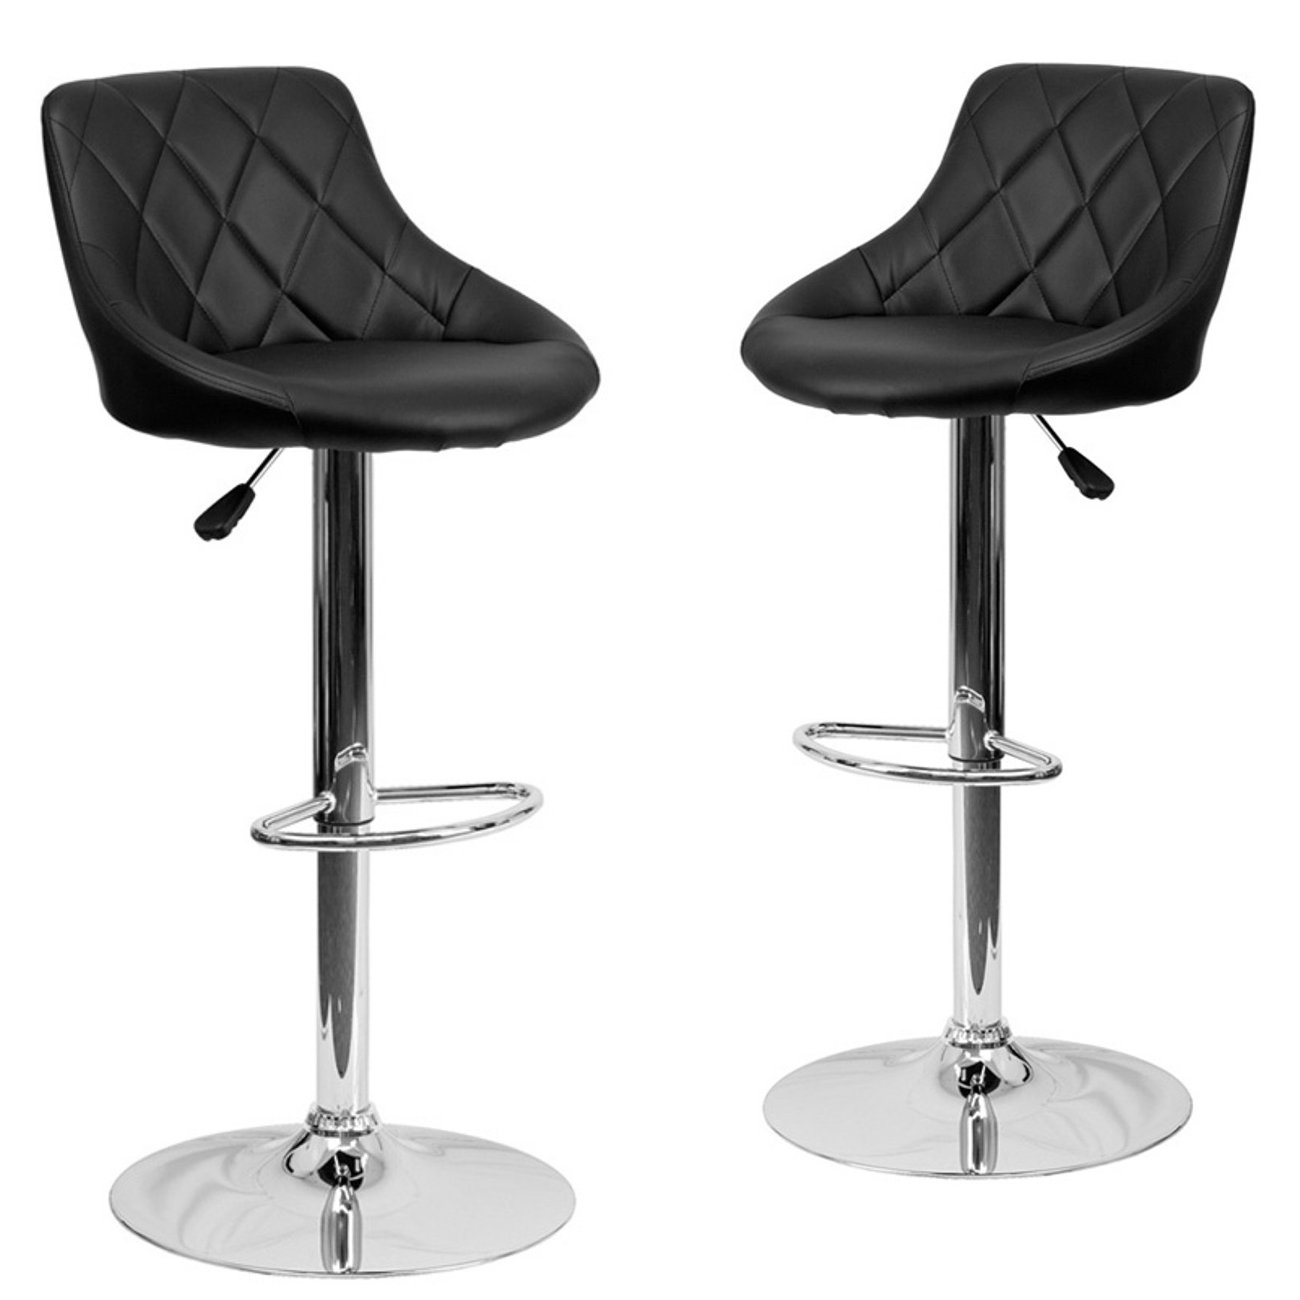 Belleze Set of 2 Black Faux Leather Bucket Seat Adjustable Barstool with Chrome Base